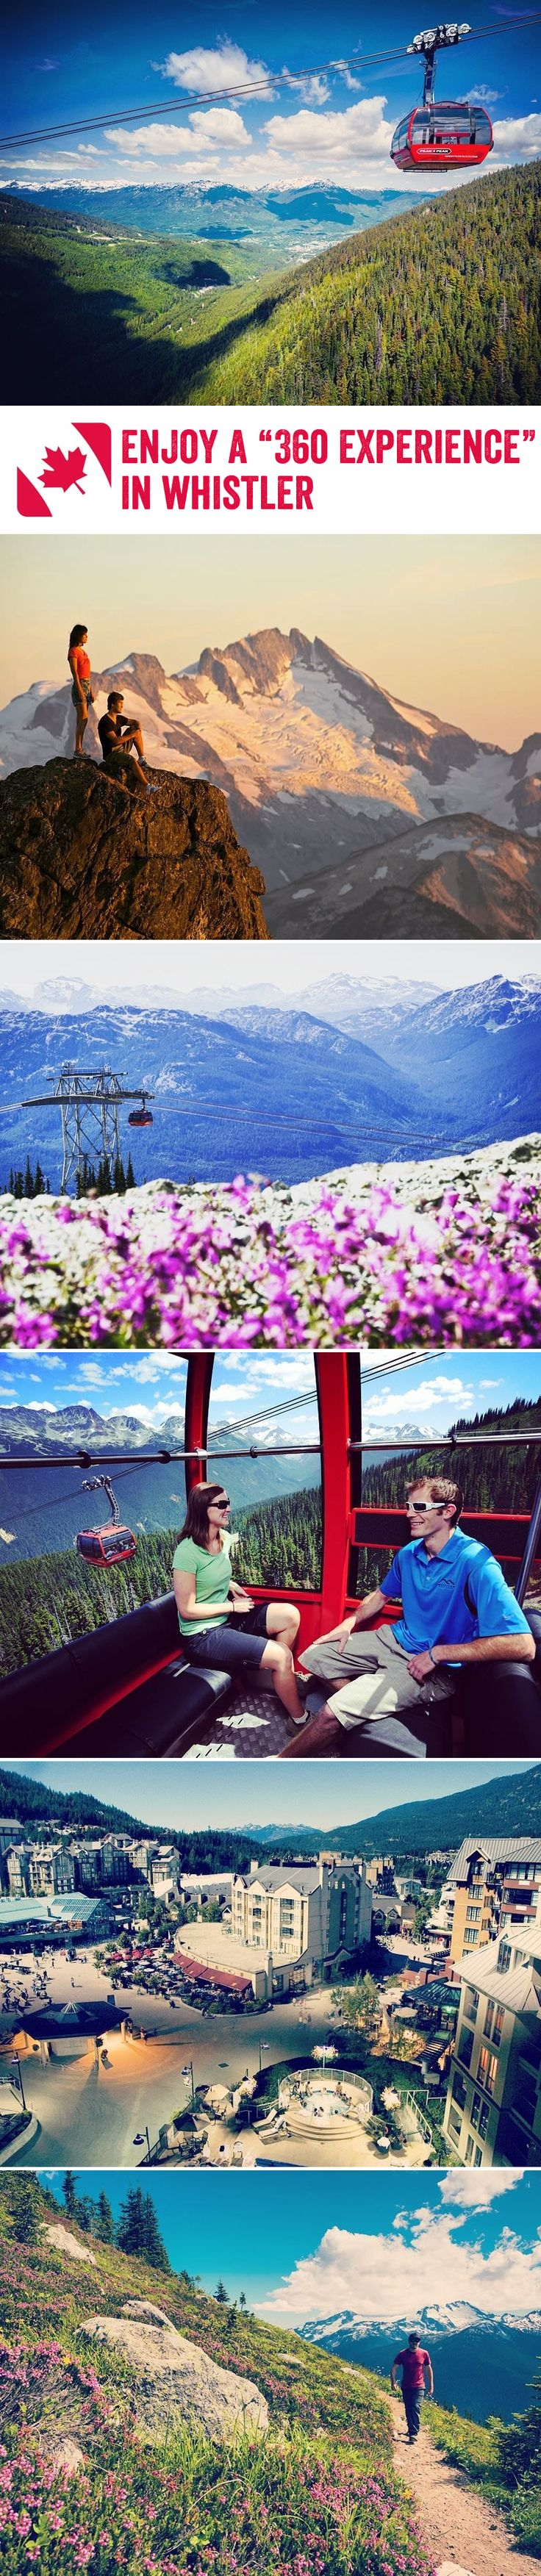 Fancy marvelling at Whistler's wonderful mountains, crystal clear lakes and verdant forests from up high? The PEAK 2 PEAK Gondola is arguably the most spectacular way to do so